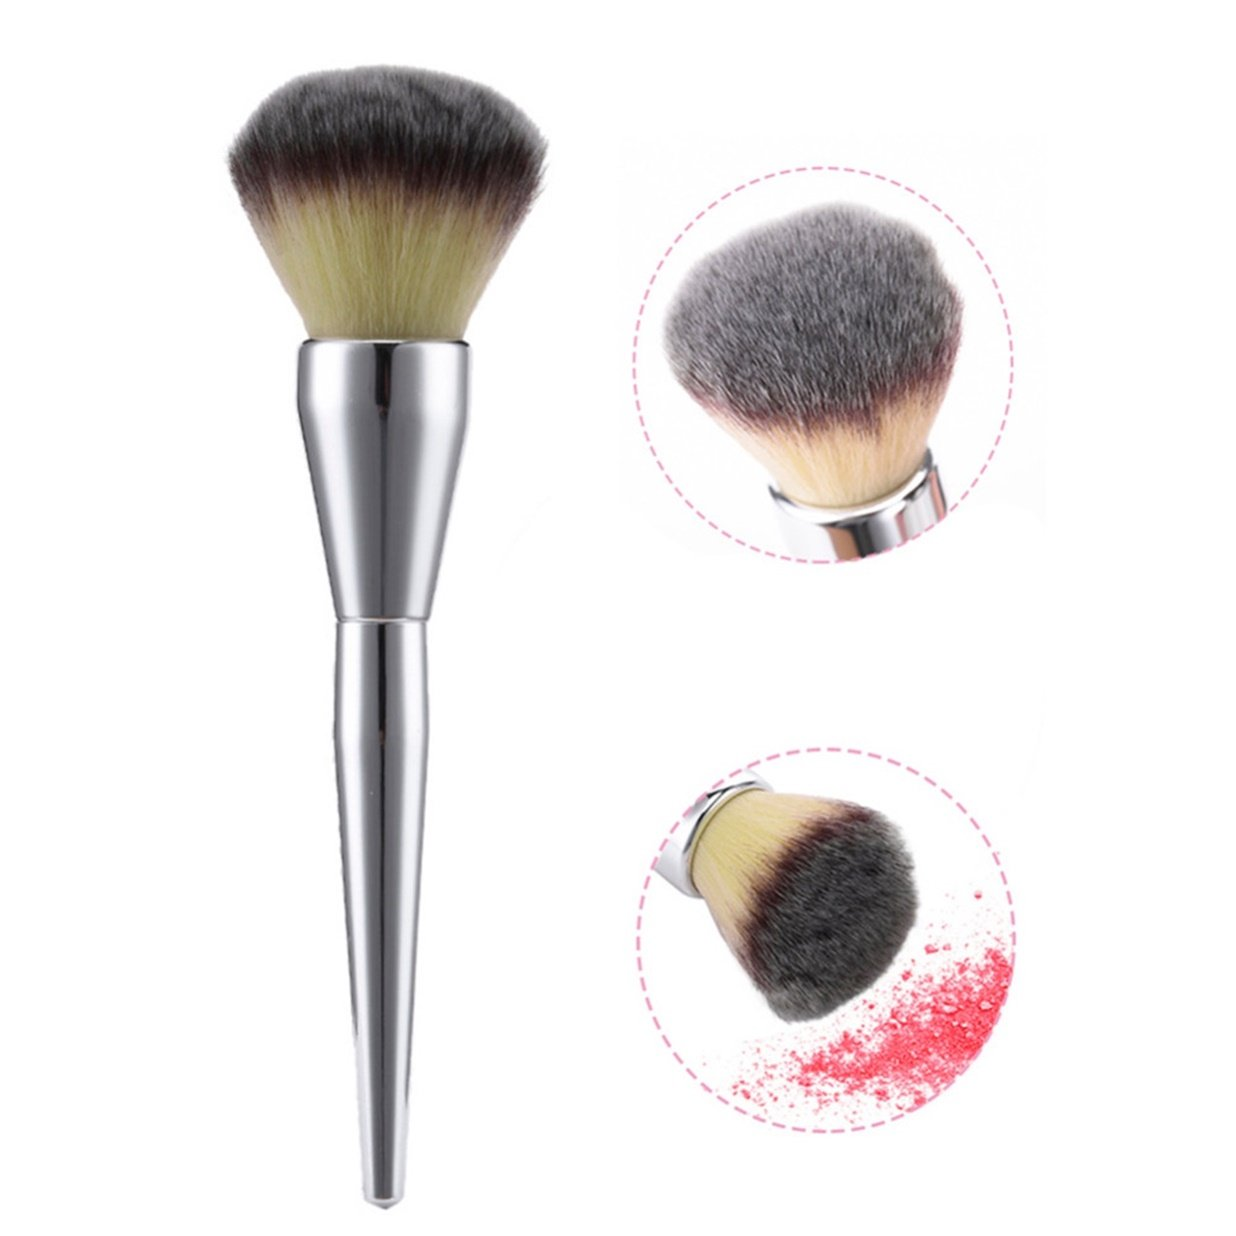 1 Piece Large Silver Handle Makeup Brush Set Powder Cosmetic Make Up Tools Professional Natural Beauty Palettes Eyeshadow Nice Popular Eyes Face Colorful Rainbow Hair Highlights Glitter Travel Kit